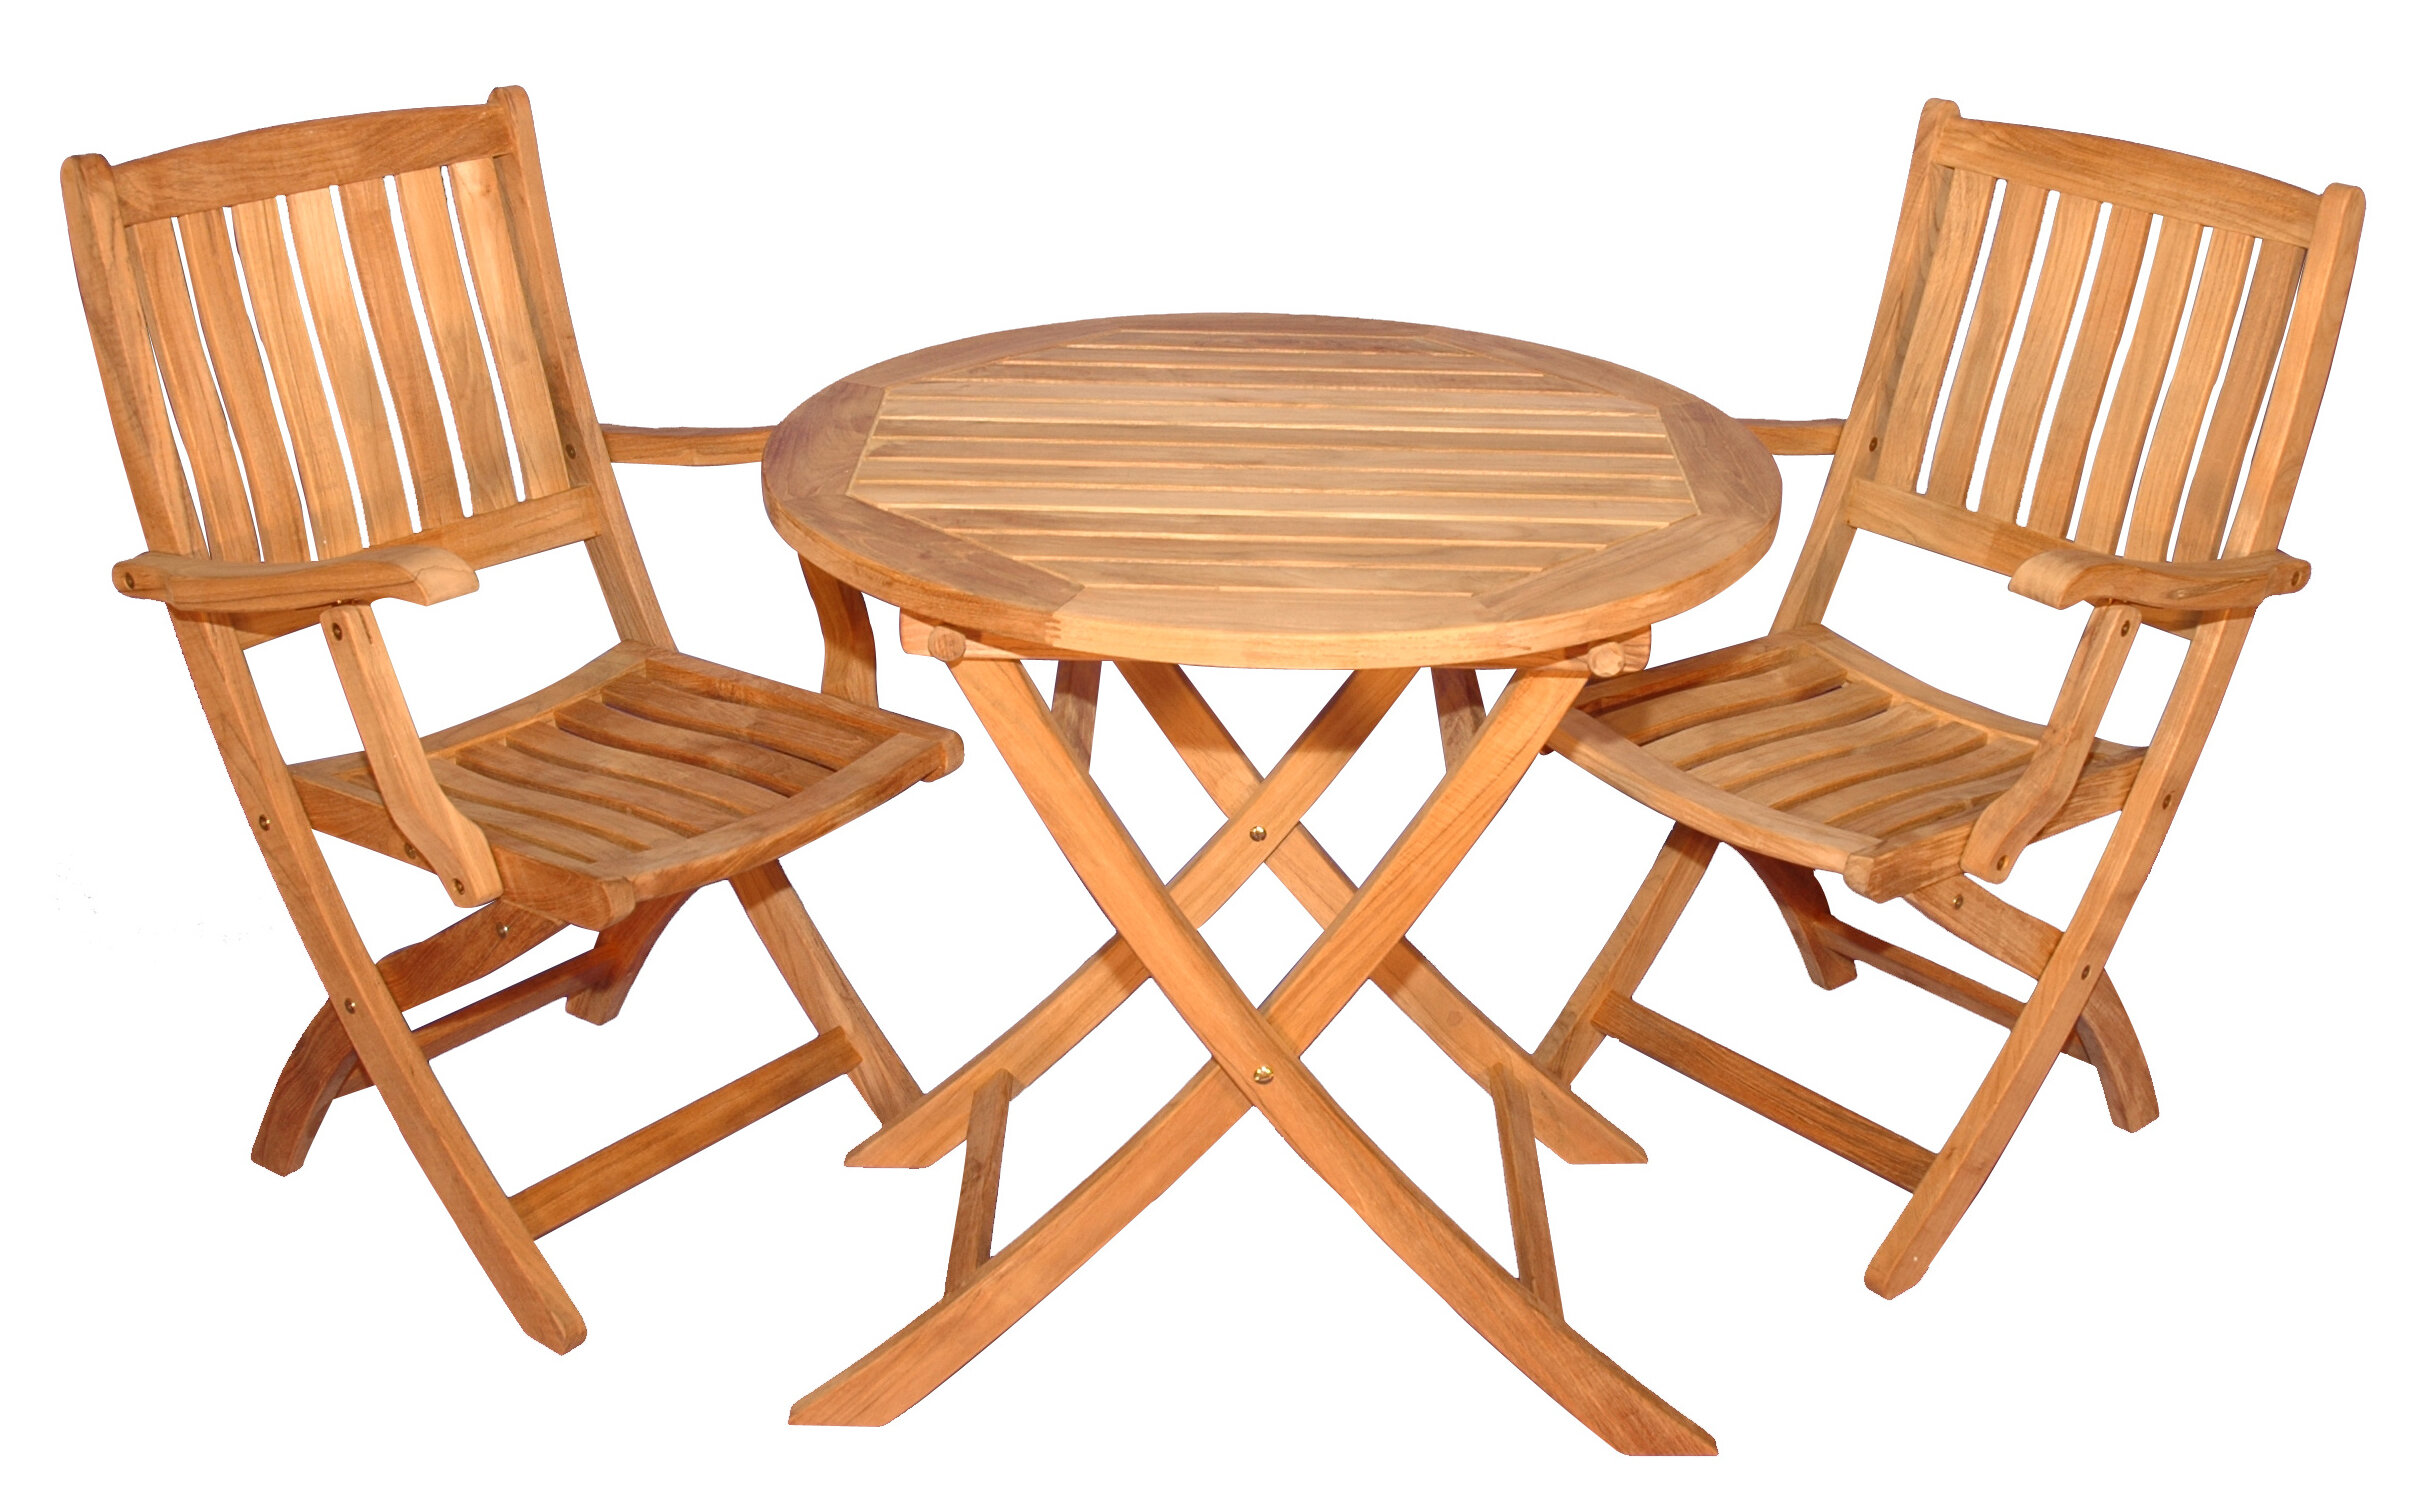 How To Clean And Care For Teak Furniture Wayfair